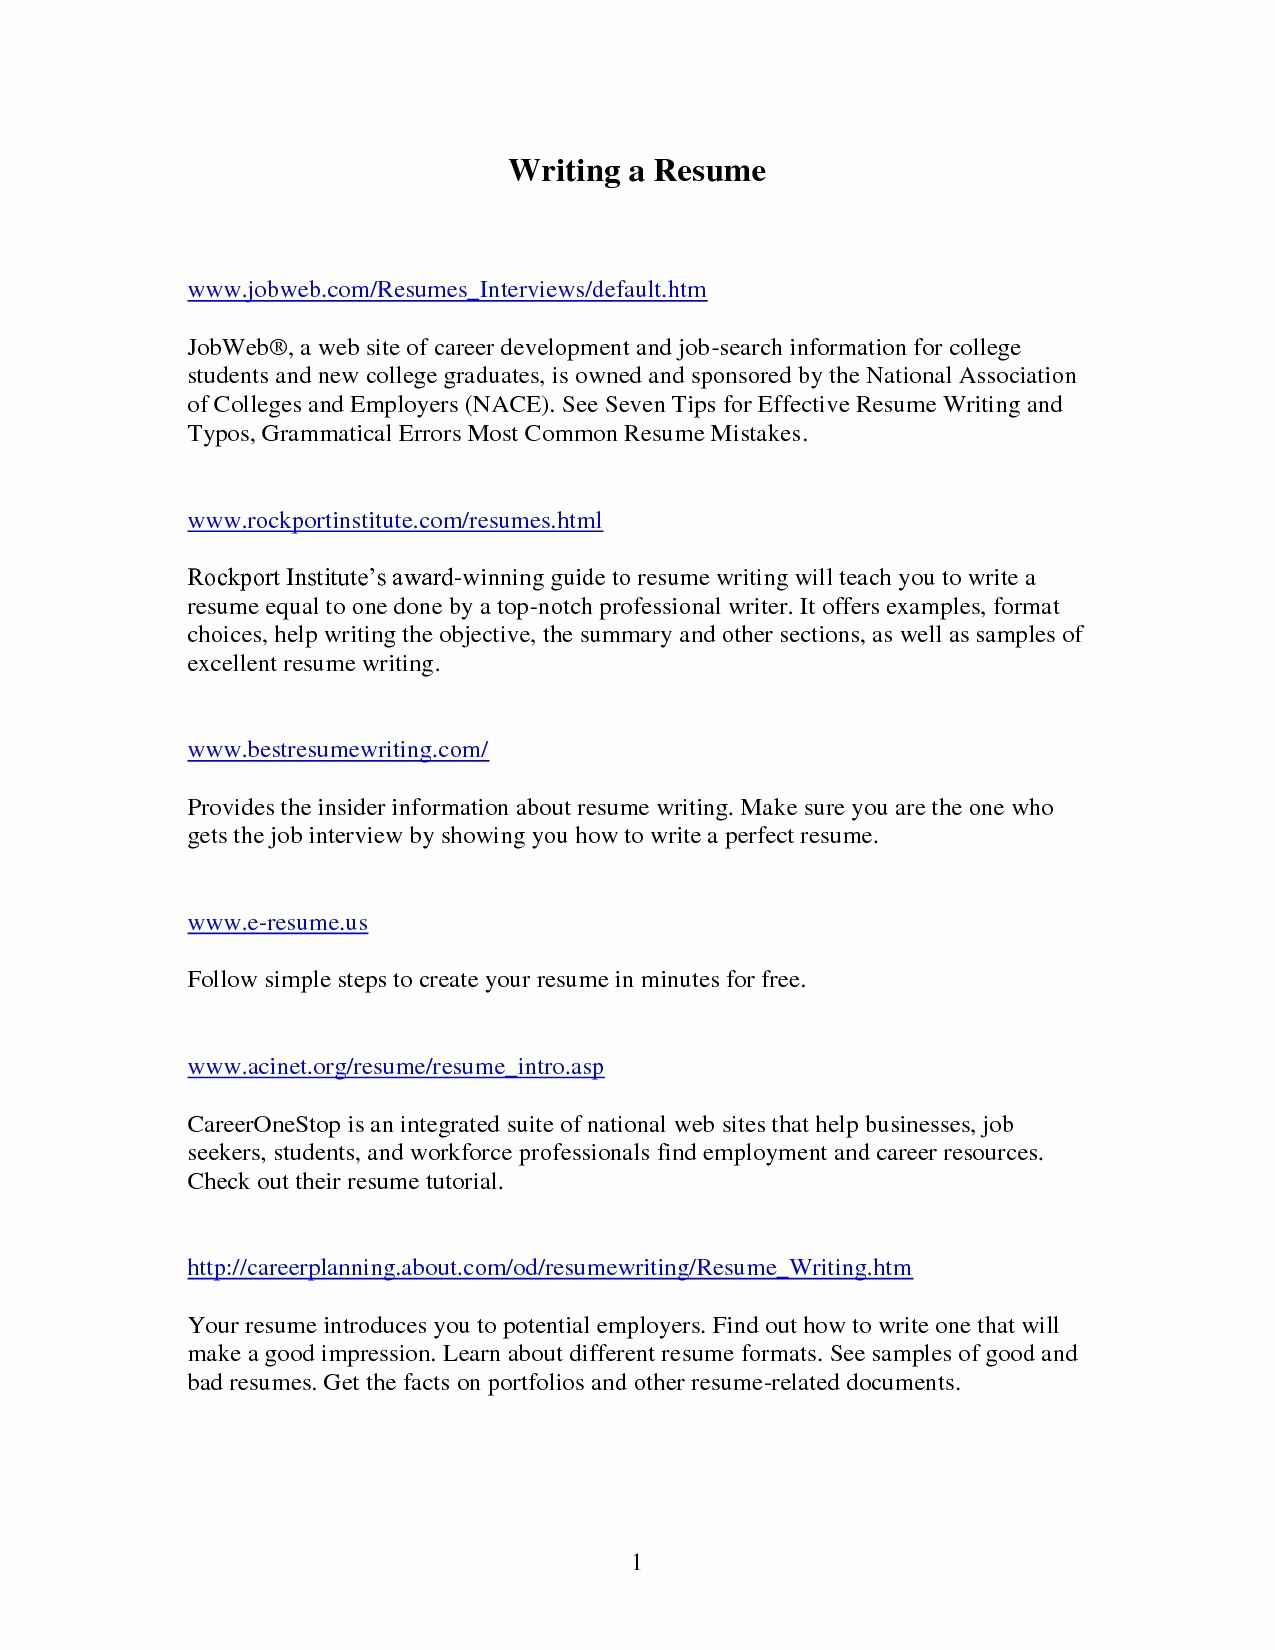 Rescission Letter Template - Luxury 609 Letter Template Free